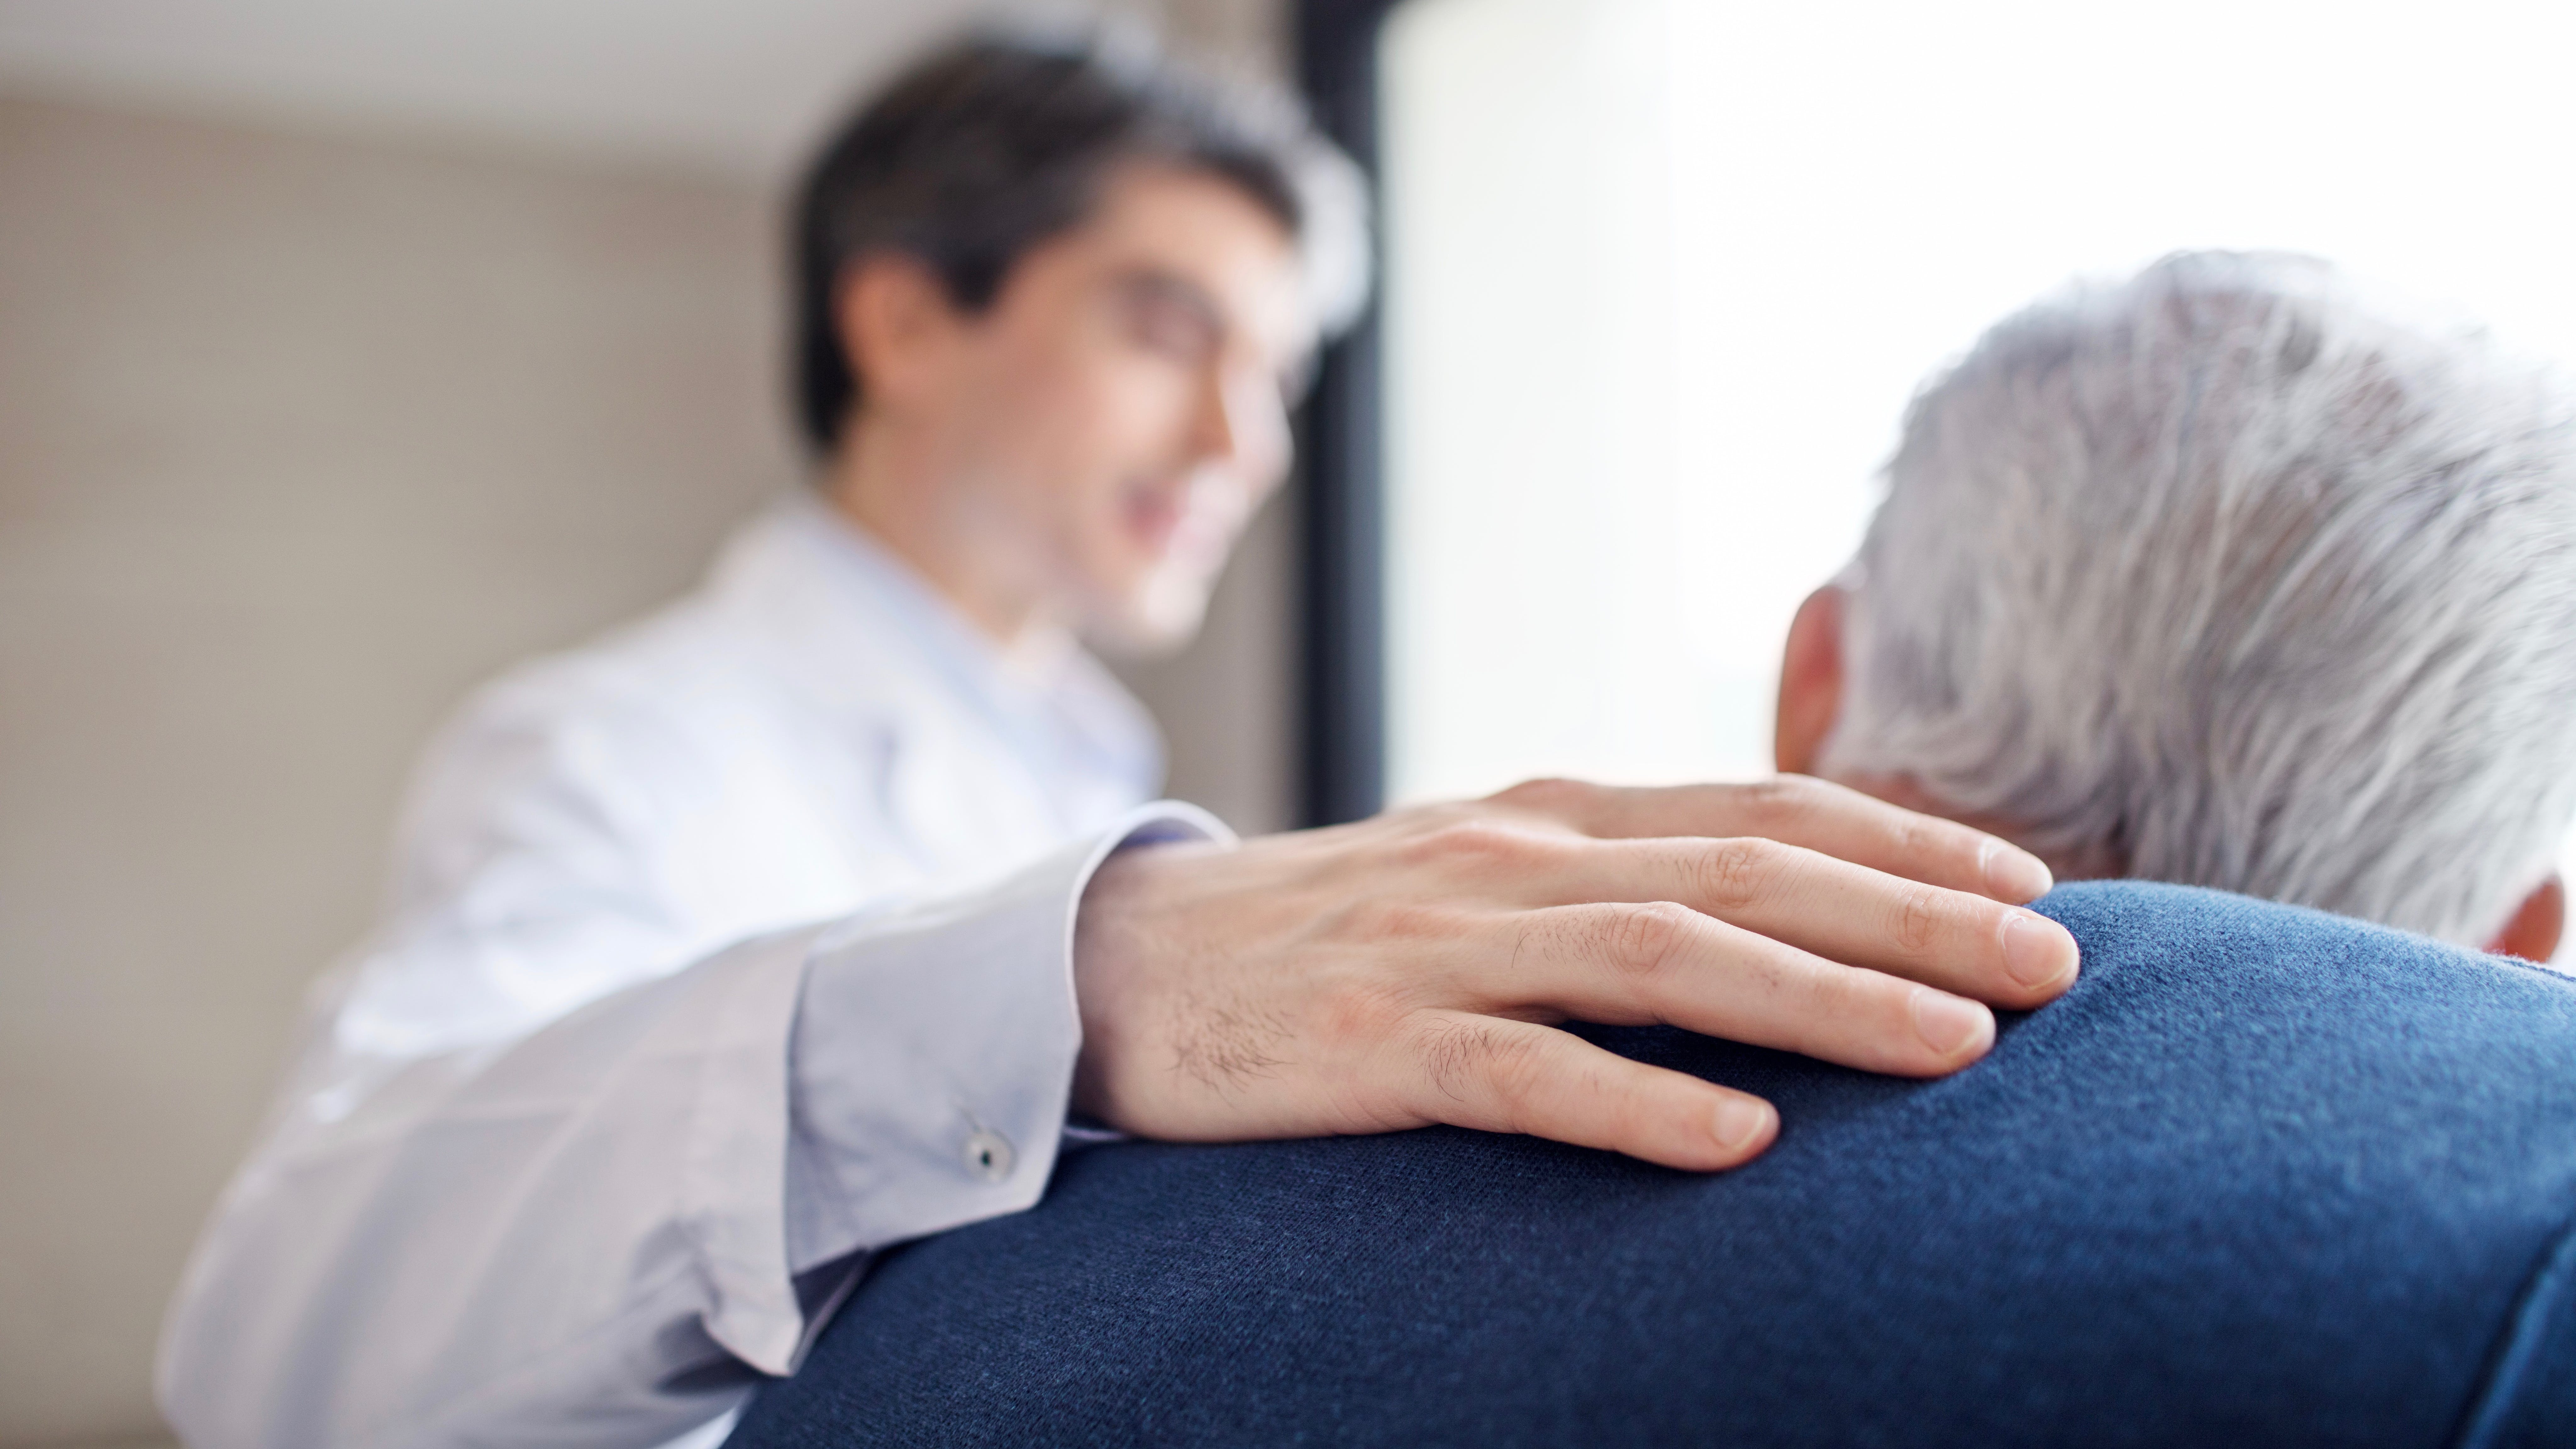 Doctor keeping hand on senior man's back